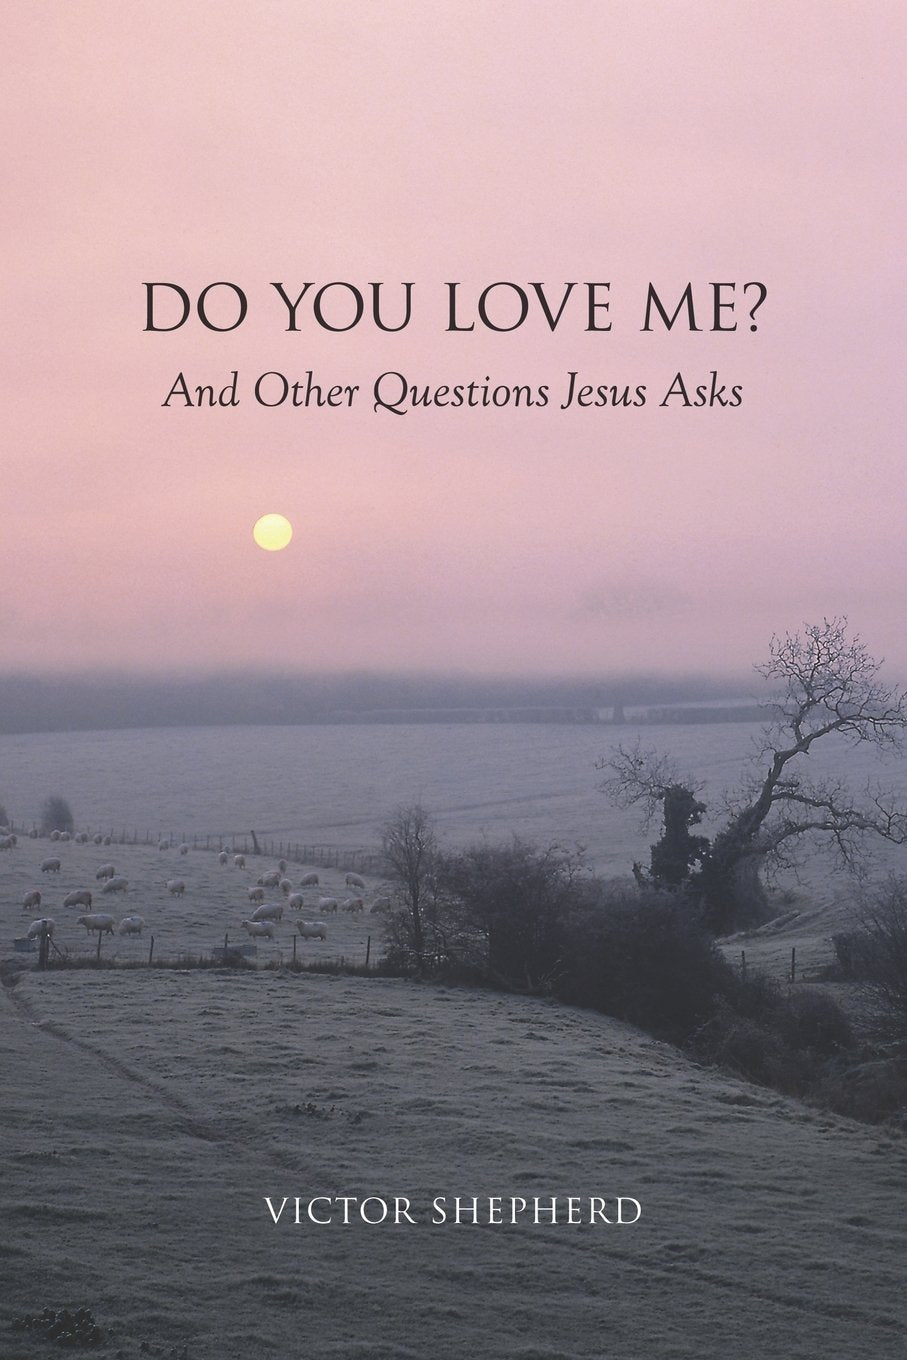 Do You Love Me? And Other Questions Jesus Asks